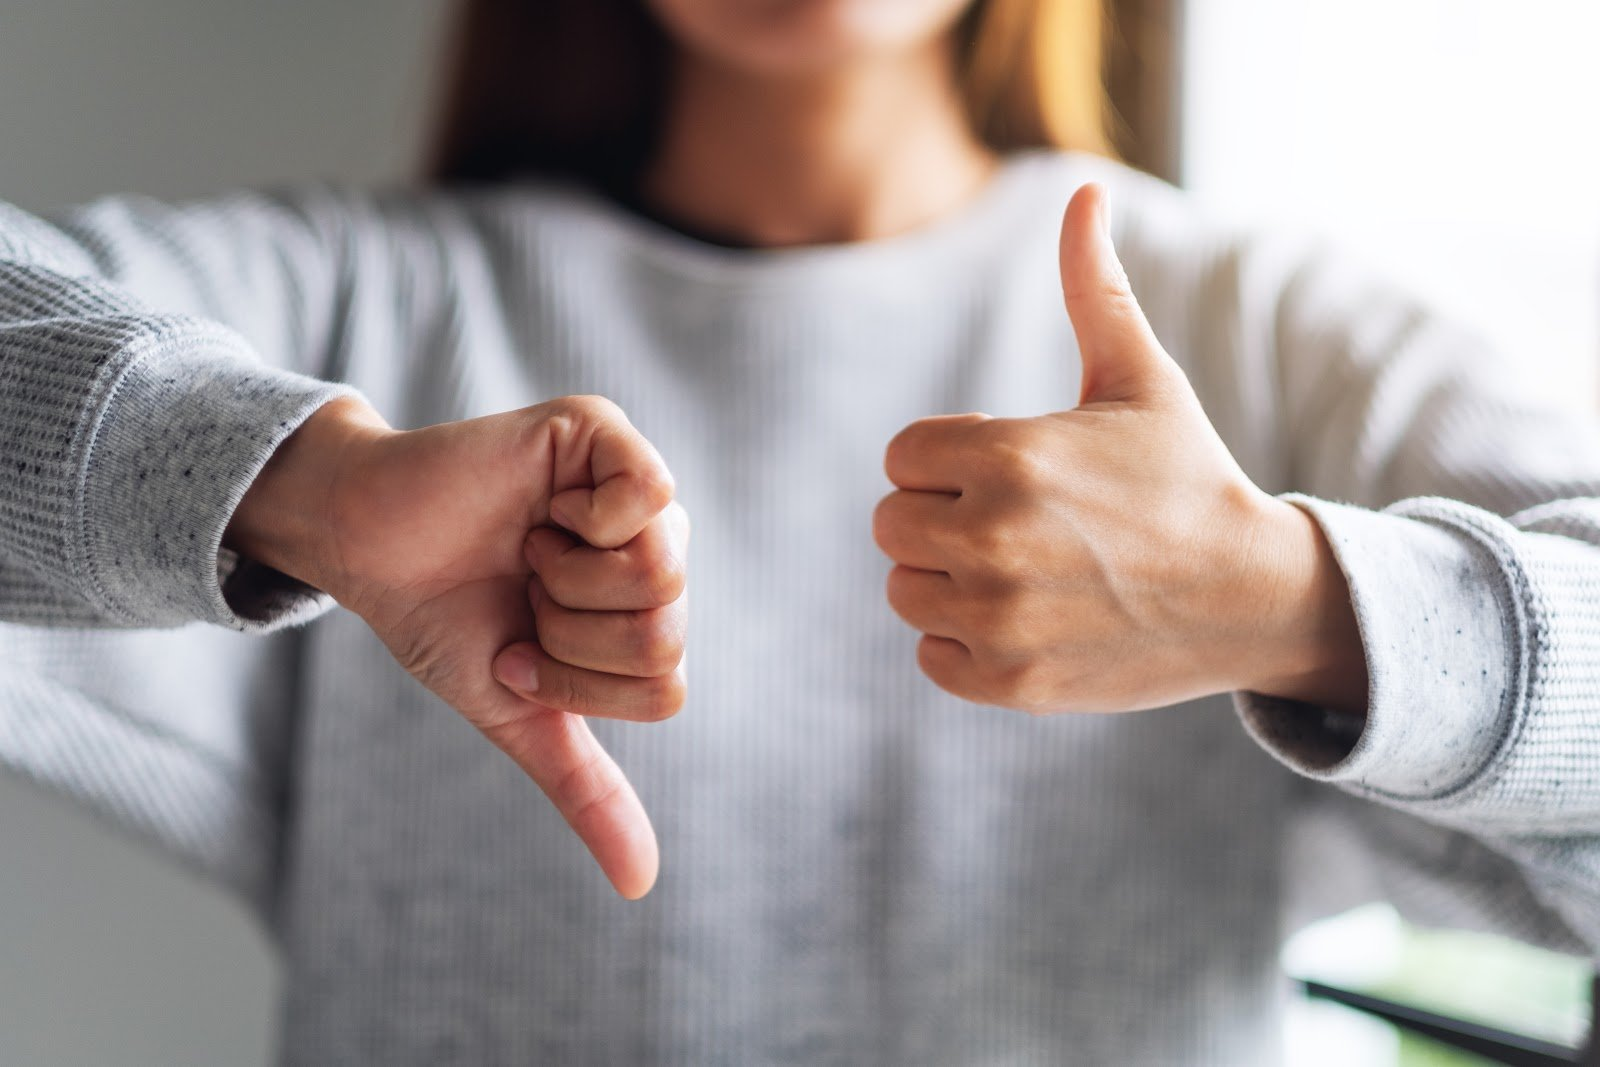 Soil-based probiotics: Woman making thumbs up and thumbs down hands sign